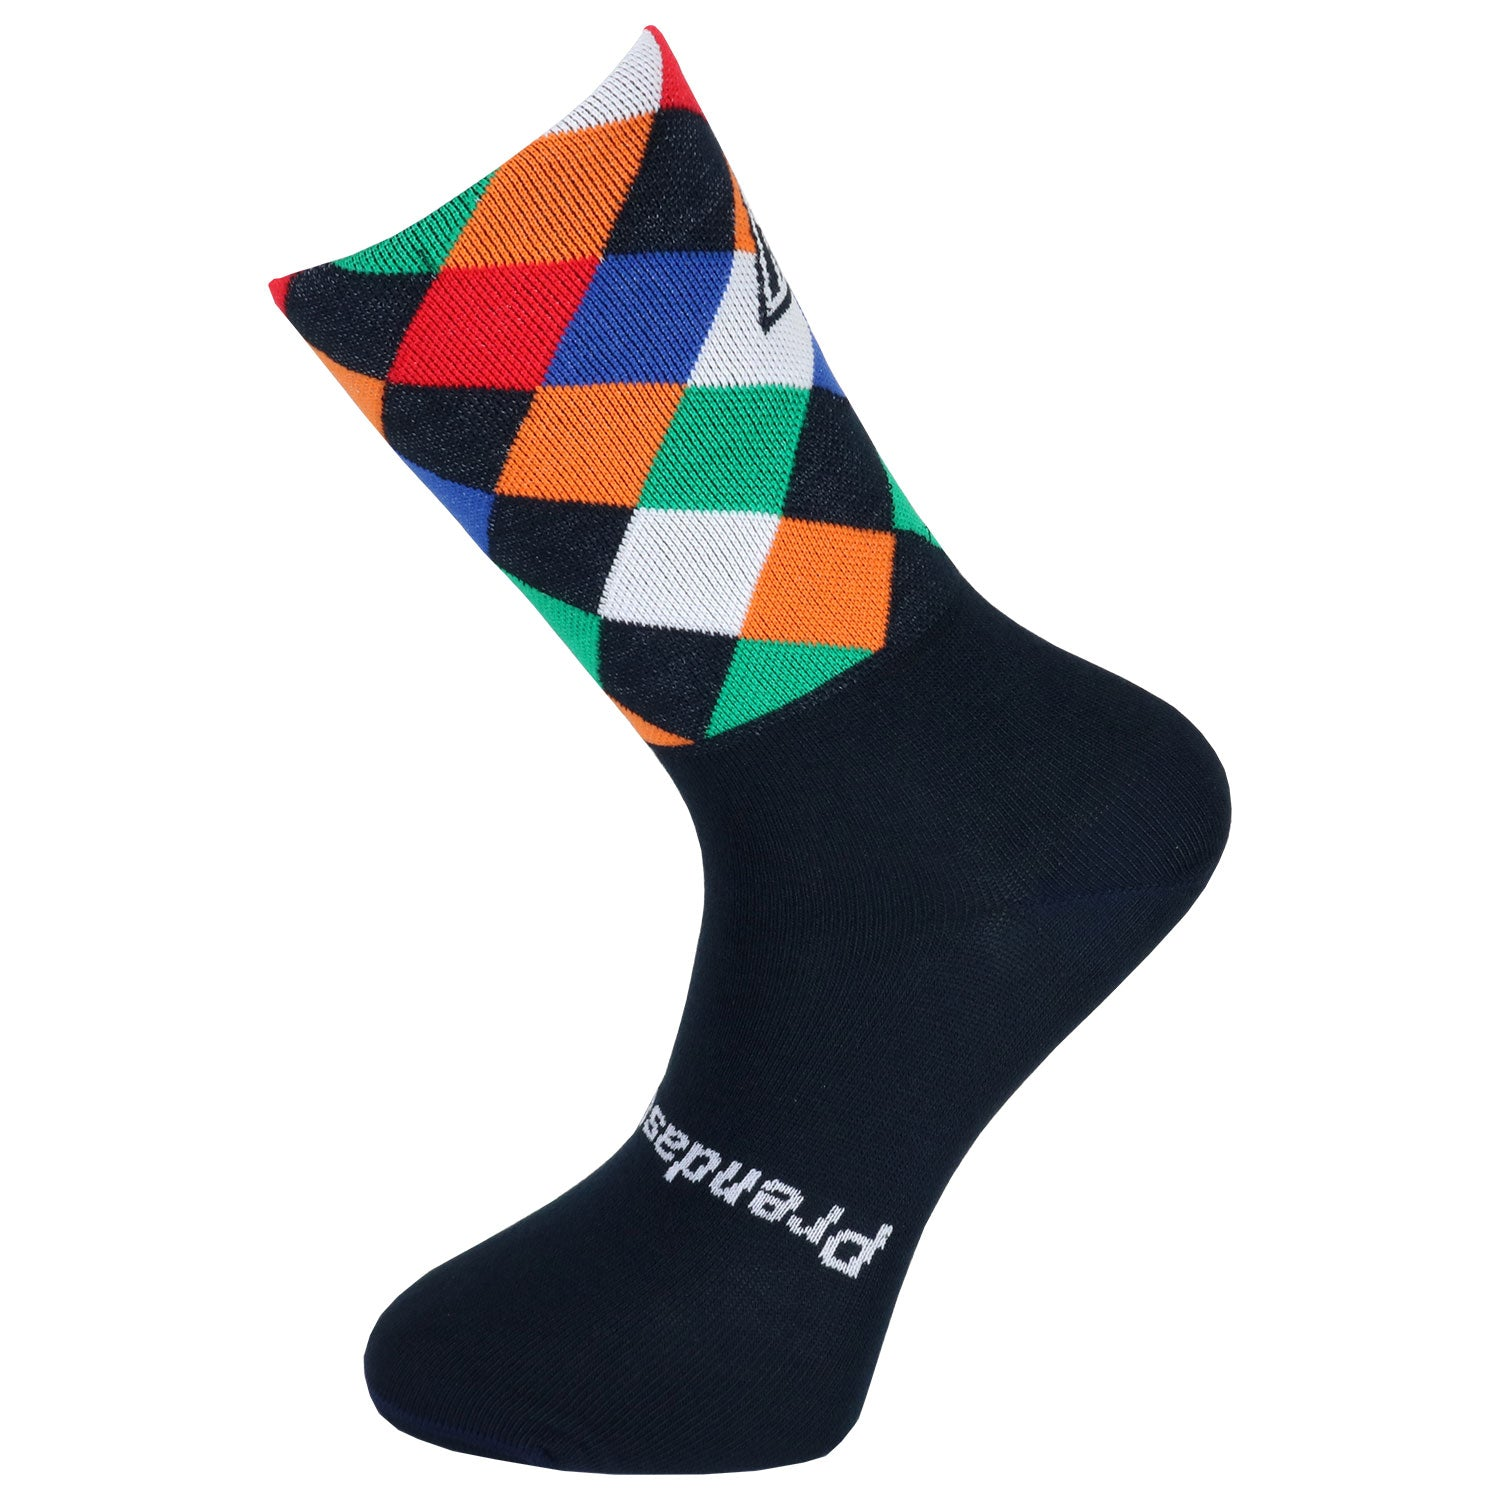 Prendas Chambéry 1989 Celebration Coolmax Socks